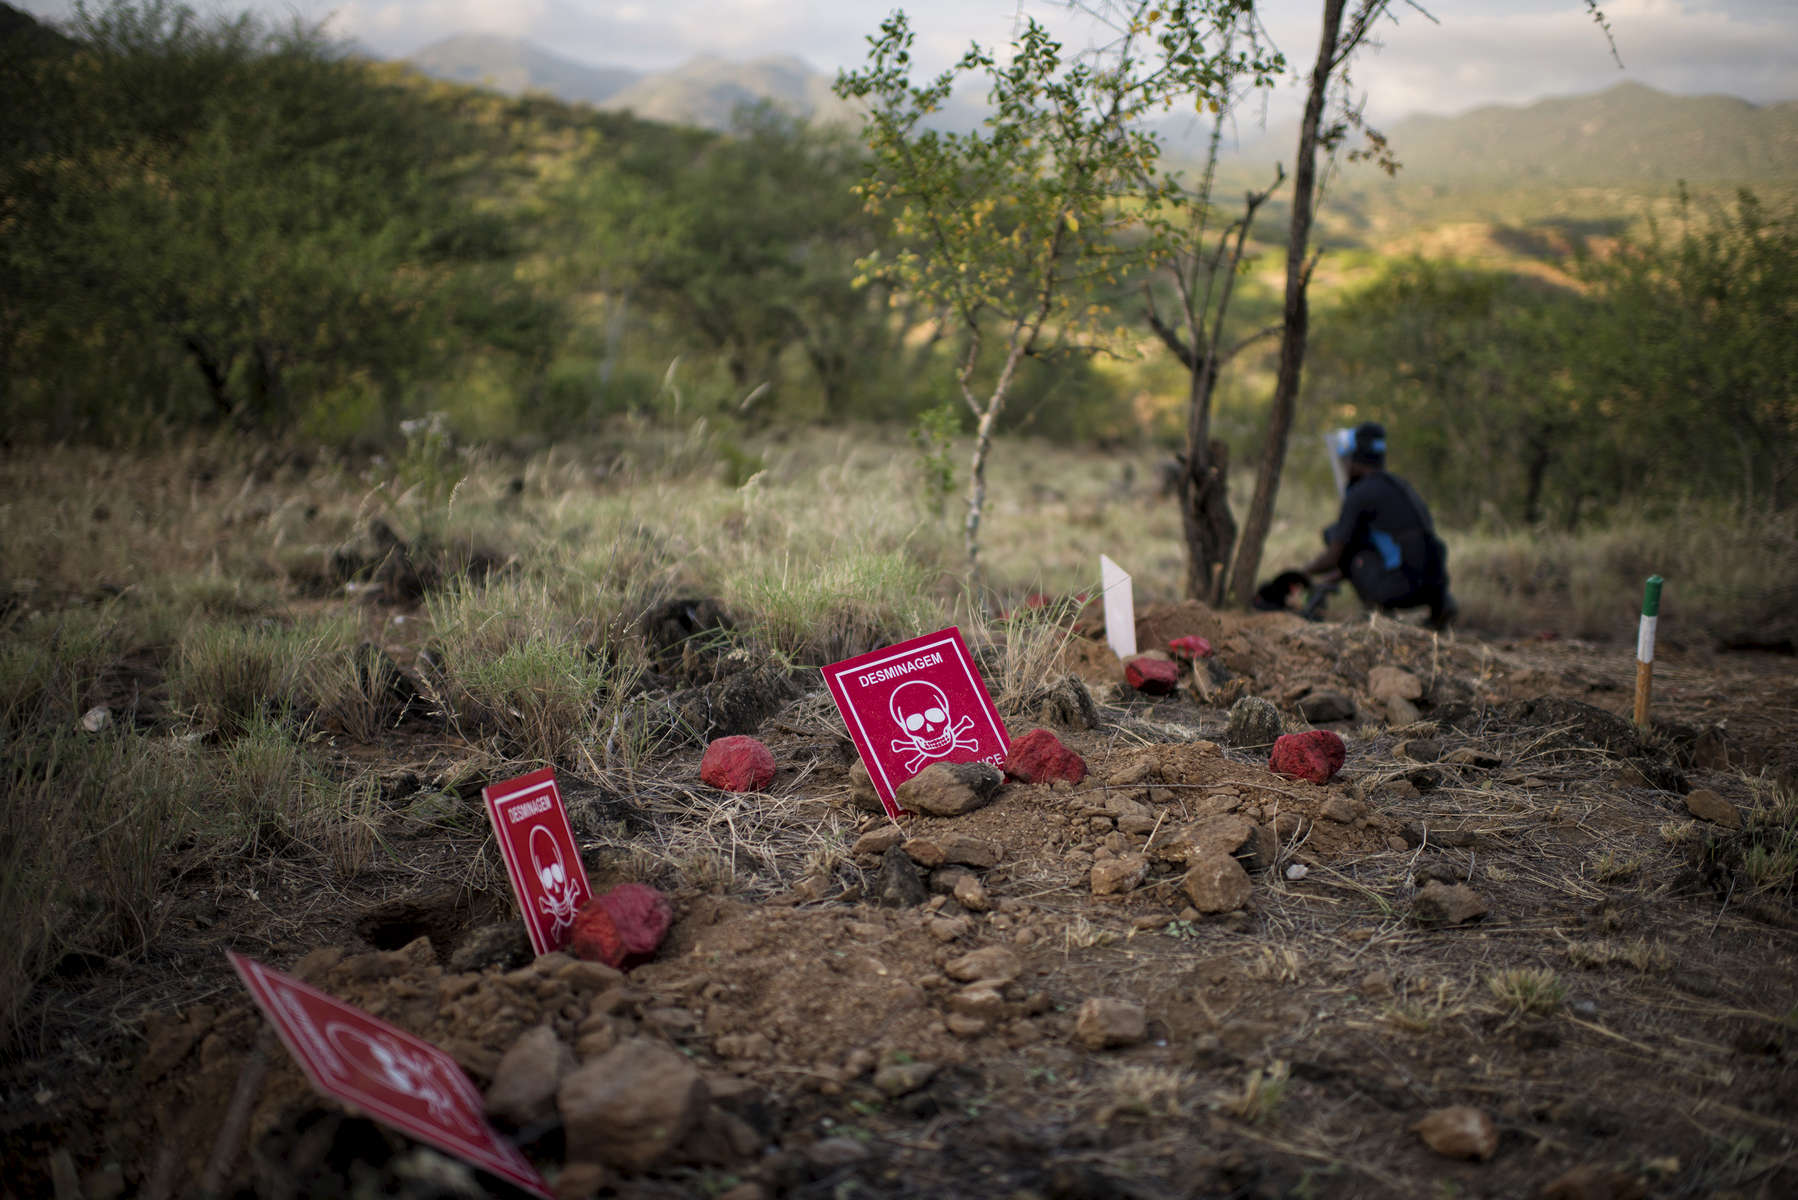 May 4, 2018: KANENGUERERE, ANGOLA - HALO deminer Inês Chipuco works checking for anti-personnel mines in her lane at the top of a hill in Kaneneguerere where she has already found many in a line of laid mines.  These deminers are working in the most difficult field in Kanenguerere.  Not only is extremely hot - with snakes and scorpions common - but the mined area is on the side of an extremely steep hill, making every step dangerous.  The area was mined during the civil war by government forces to protect the nearby railway line that can be seen in the background, as well as various troop positions. It is currently used by roughly 170 people including village residents and nomadic herders - many of whom are young children - who pass through uncleared land every day.